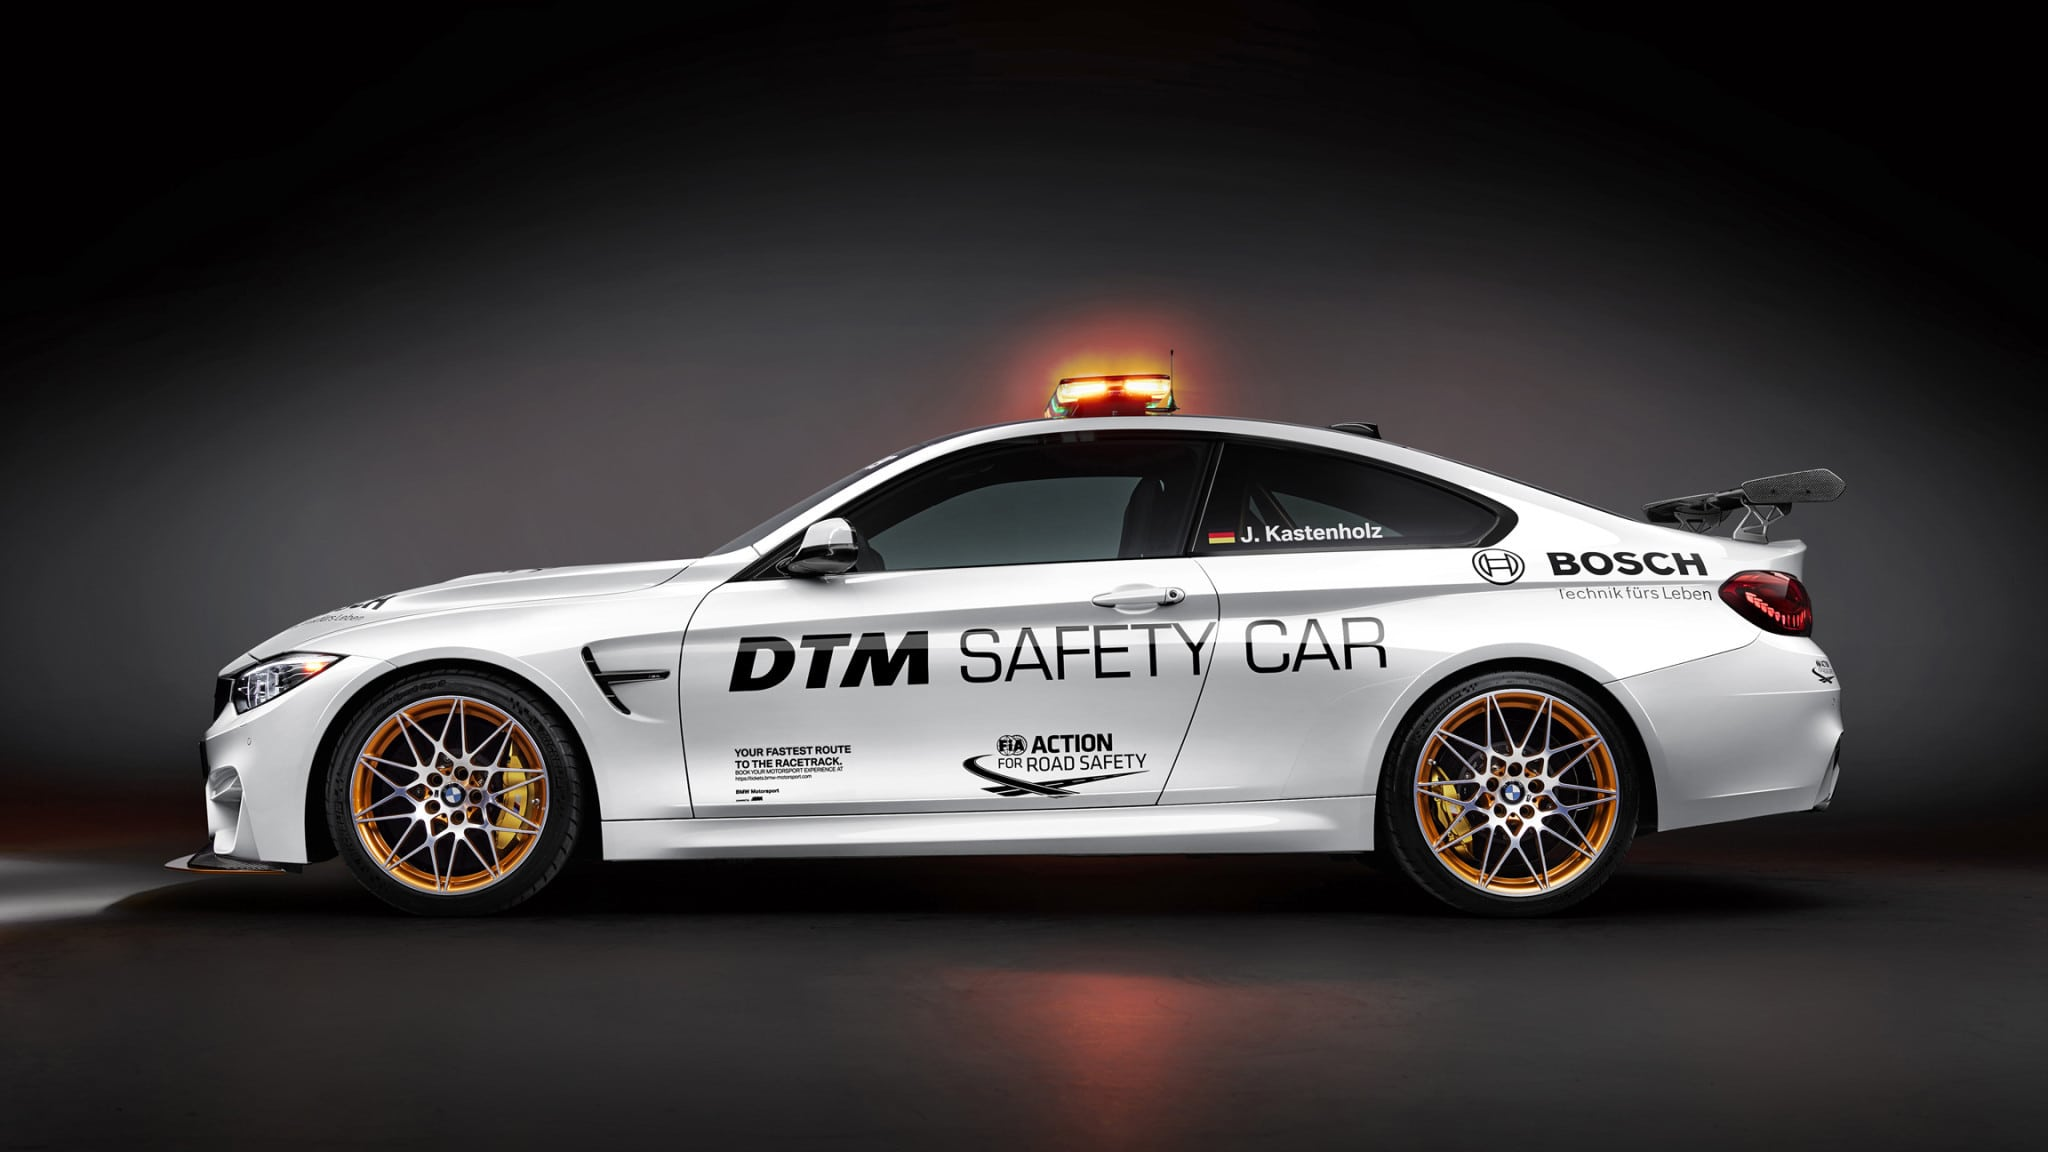 p90217508-highres-bmw-m4-gts-dtm-safet-1